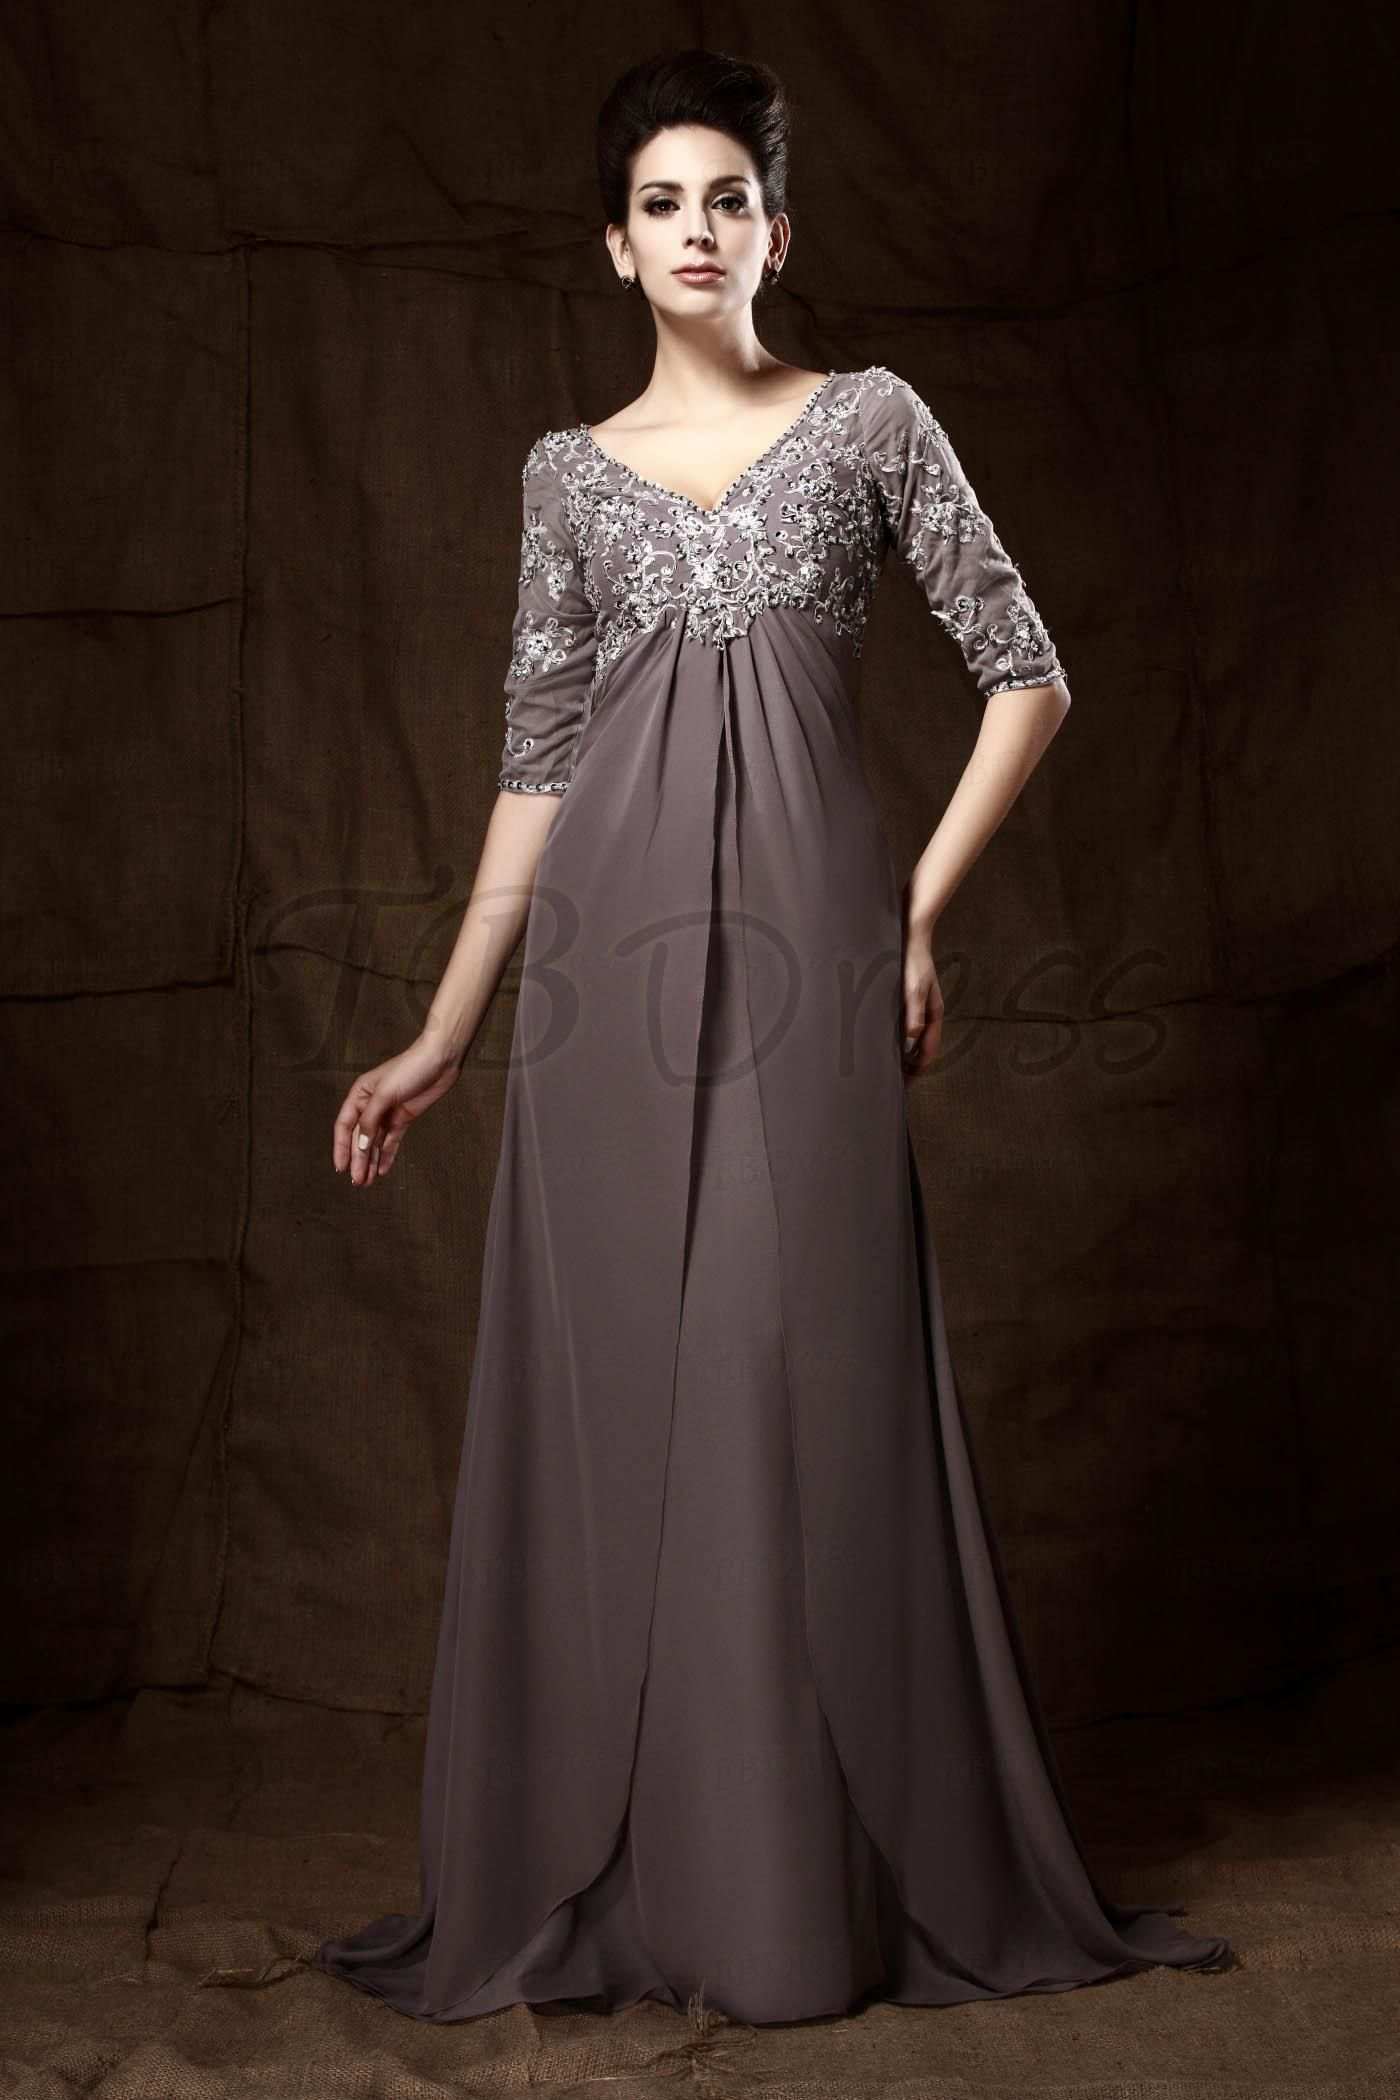 Graceful Lace/Appliques A-line V-Neck Half Sleeves Floor-Length Taline's Mother of the Bride Dress.  This also comes in our colors.